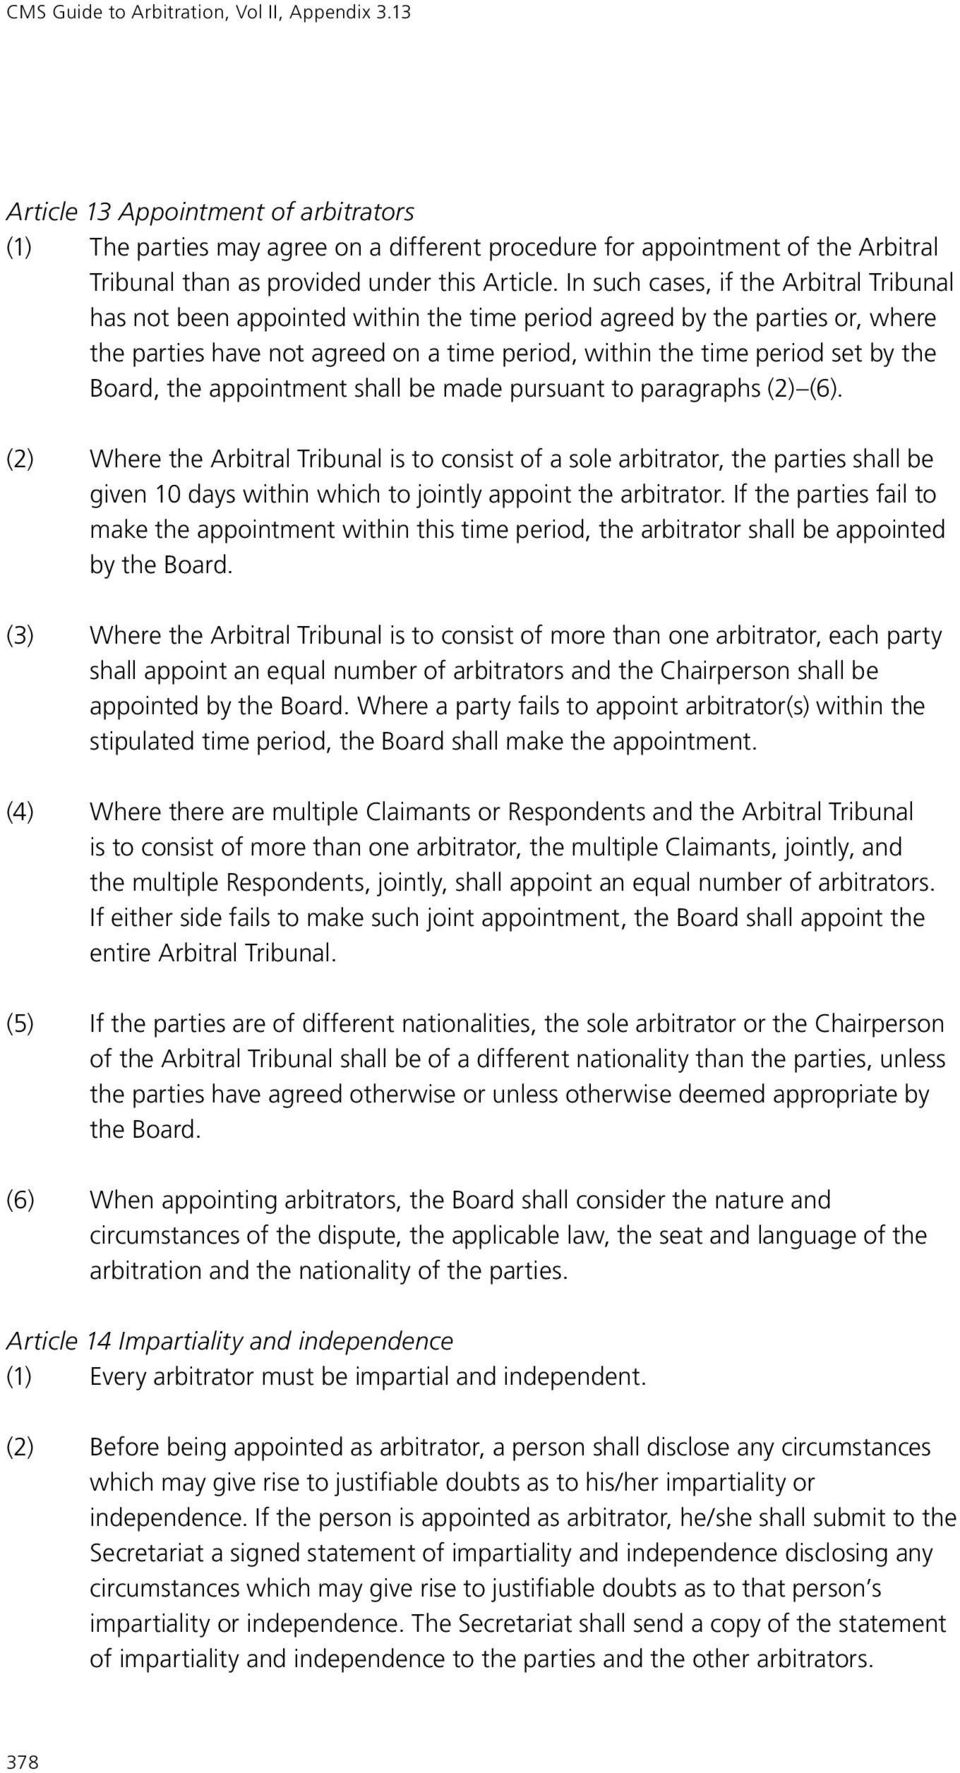 In such cases, if the Arbitral Tribunal has not been appointed within the time period agreed by the parties or, where the parties have not agreed on a time period, within the time period set by the